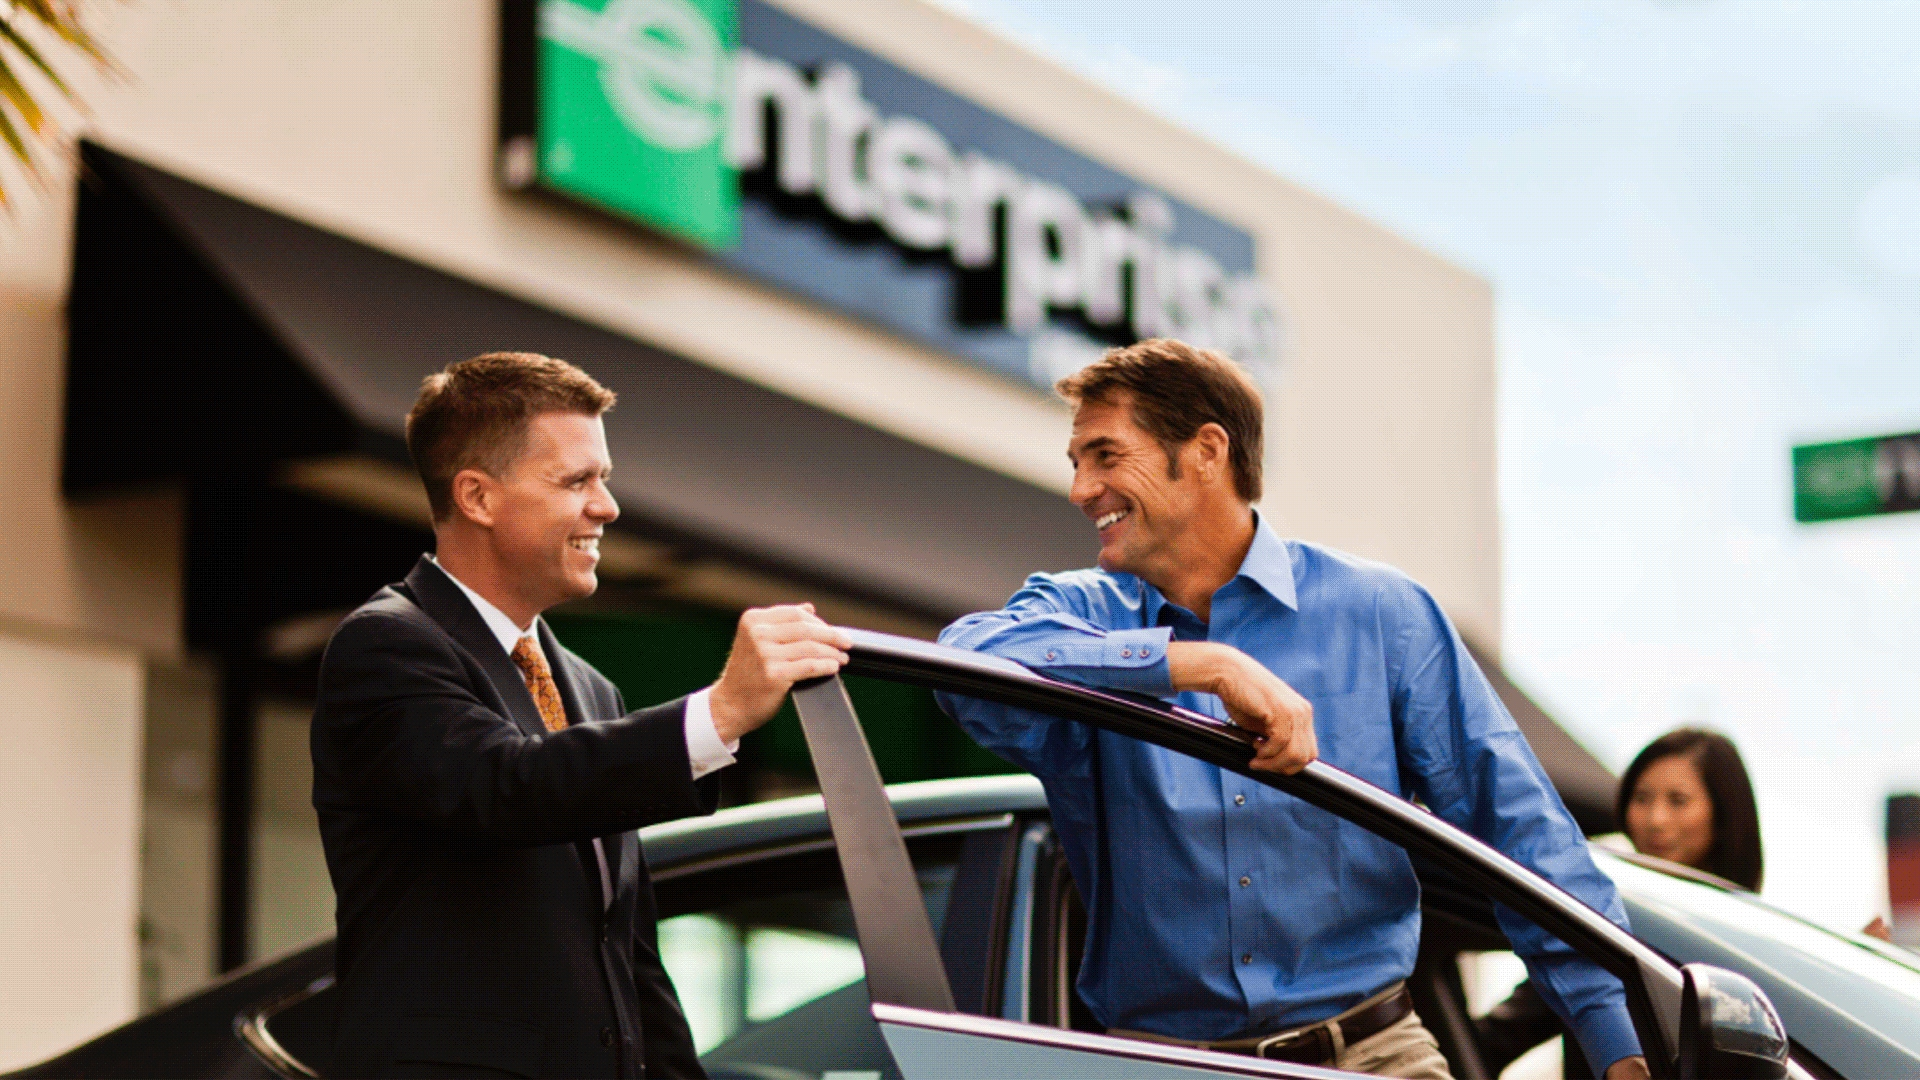 Enterprise Rent A Car Indianapolis In